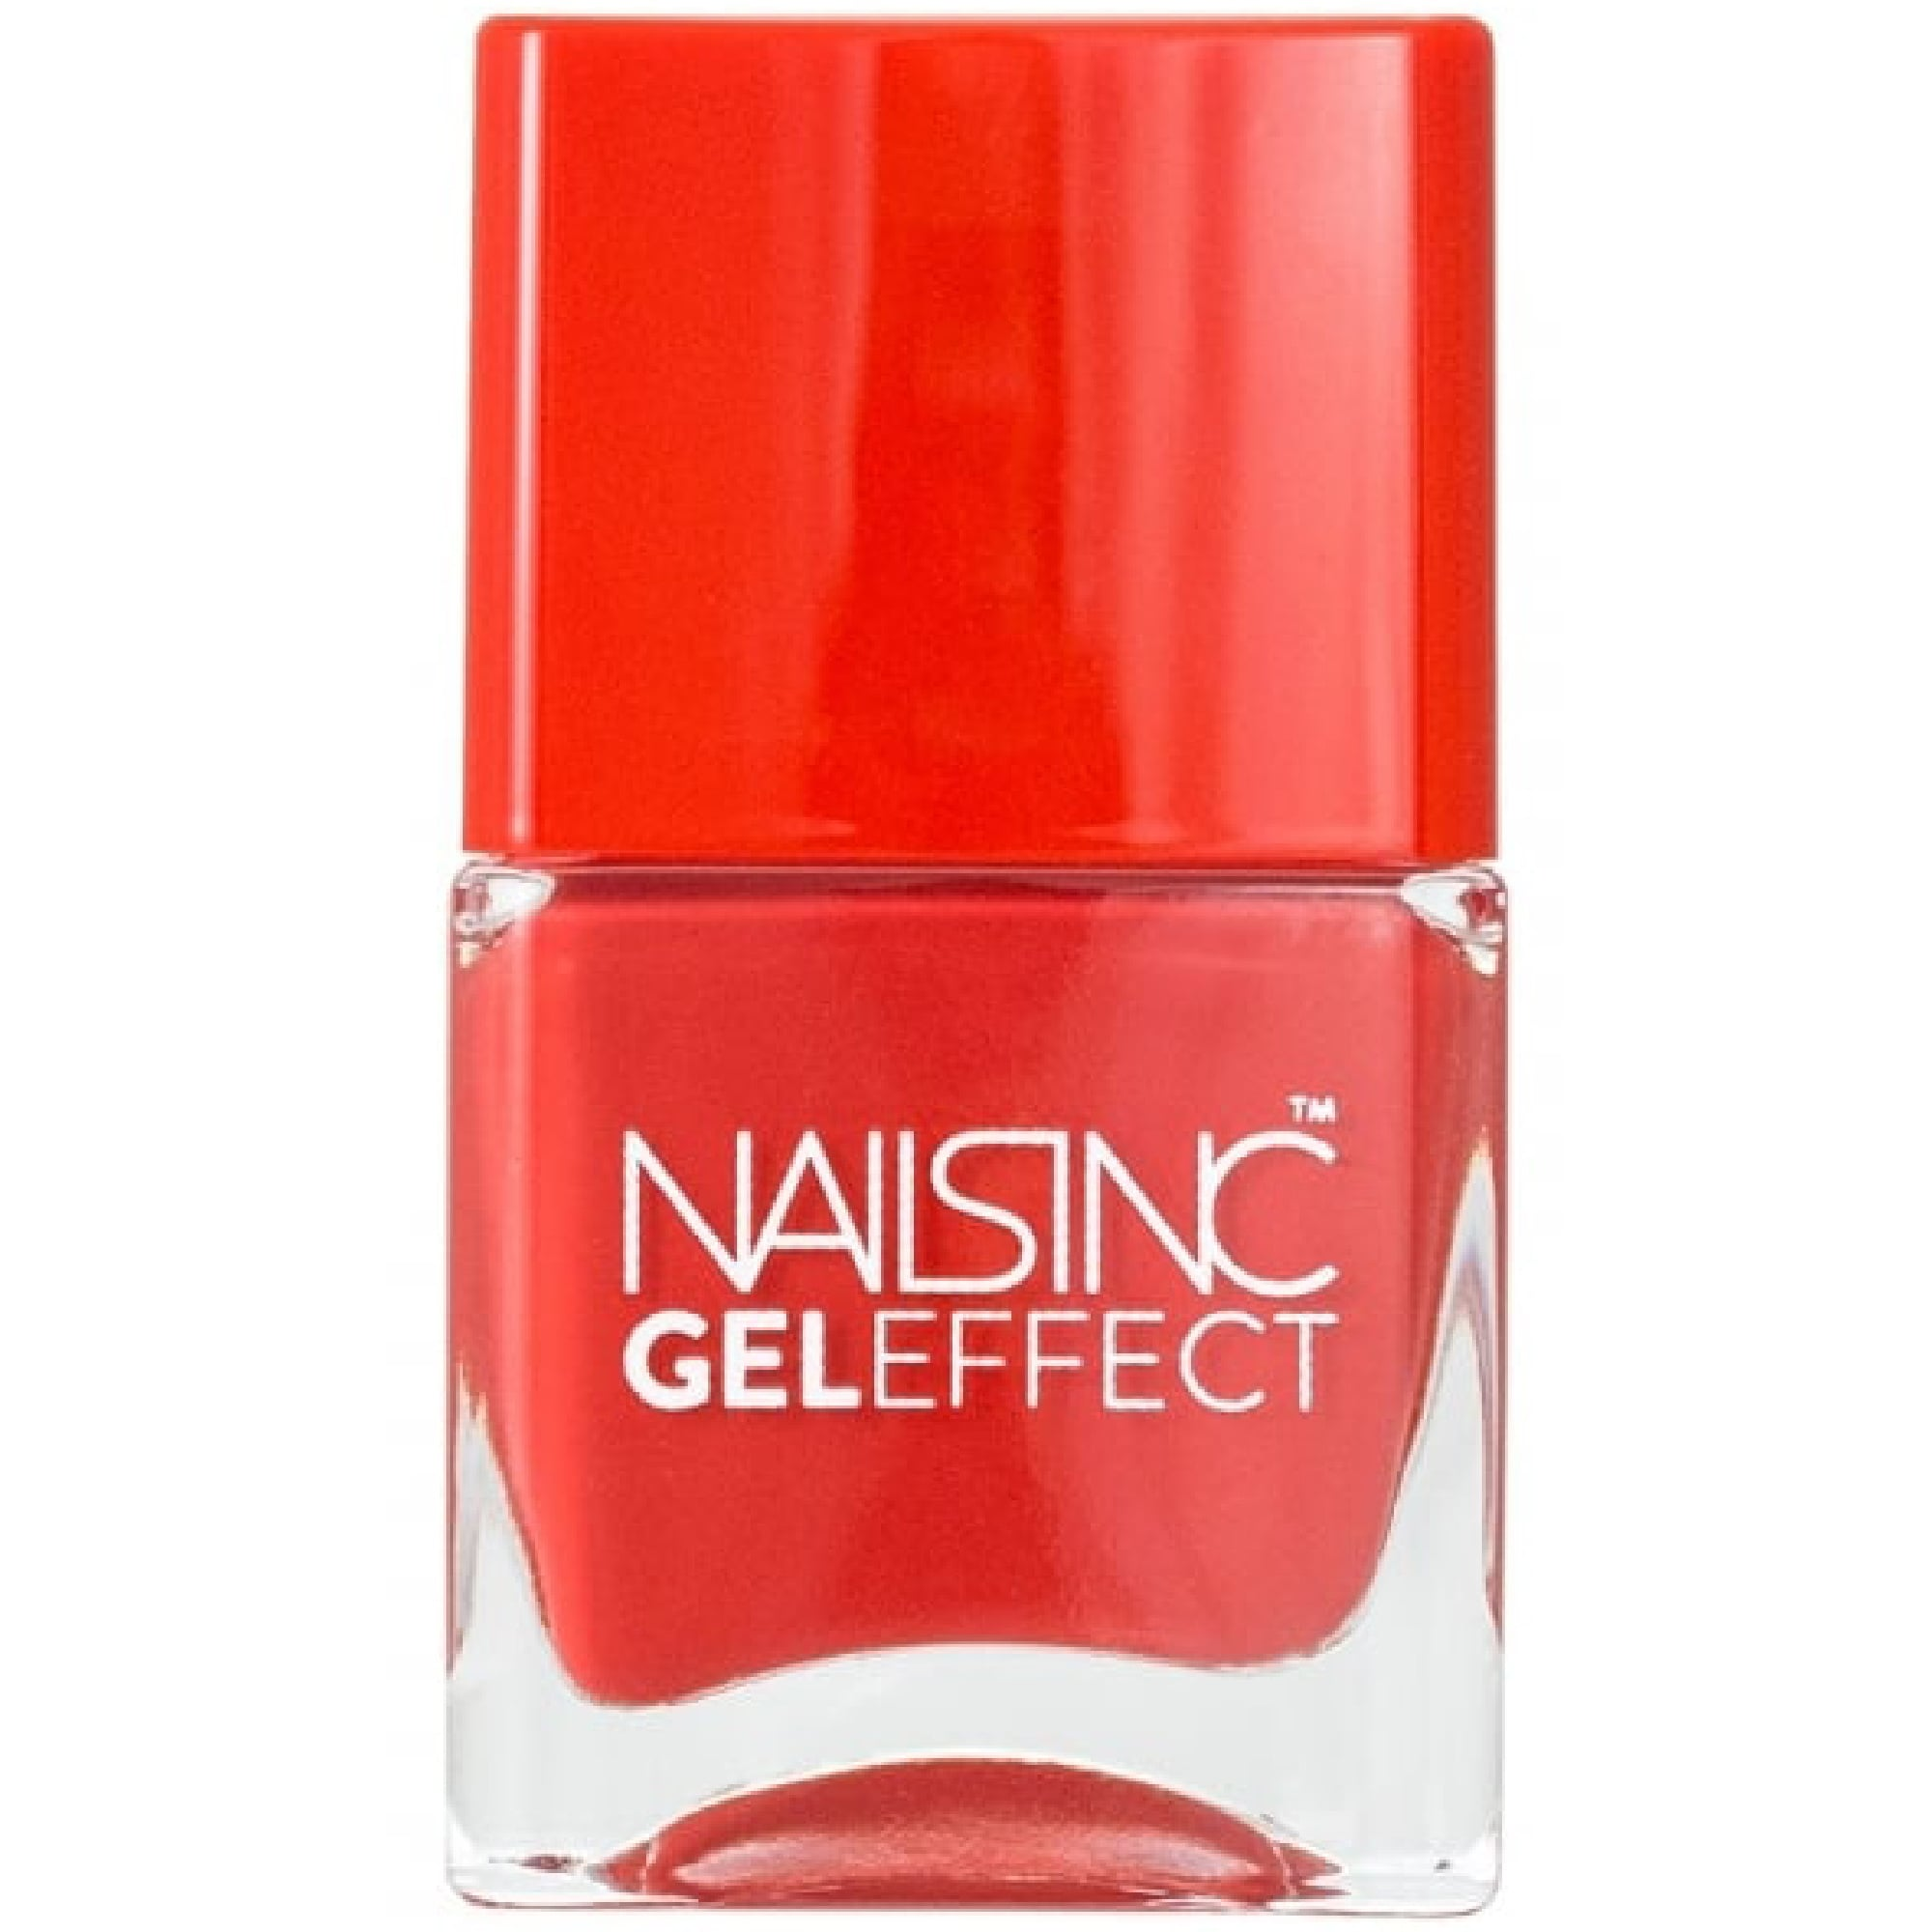 Nails inc Gel Effect Nail Polish - Regents Park Place (7630) 14ml